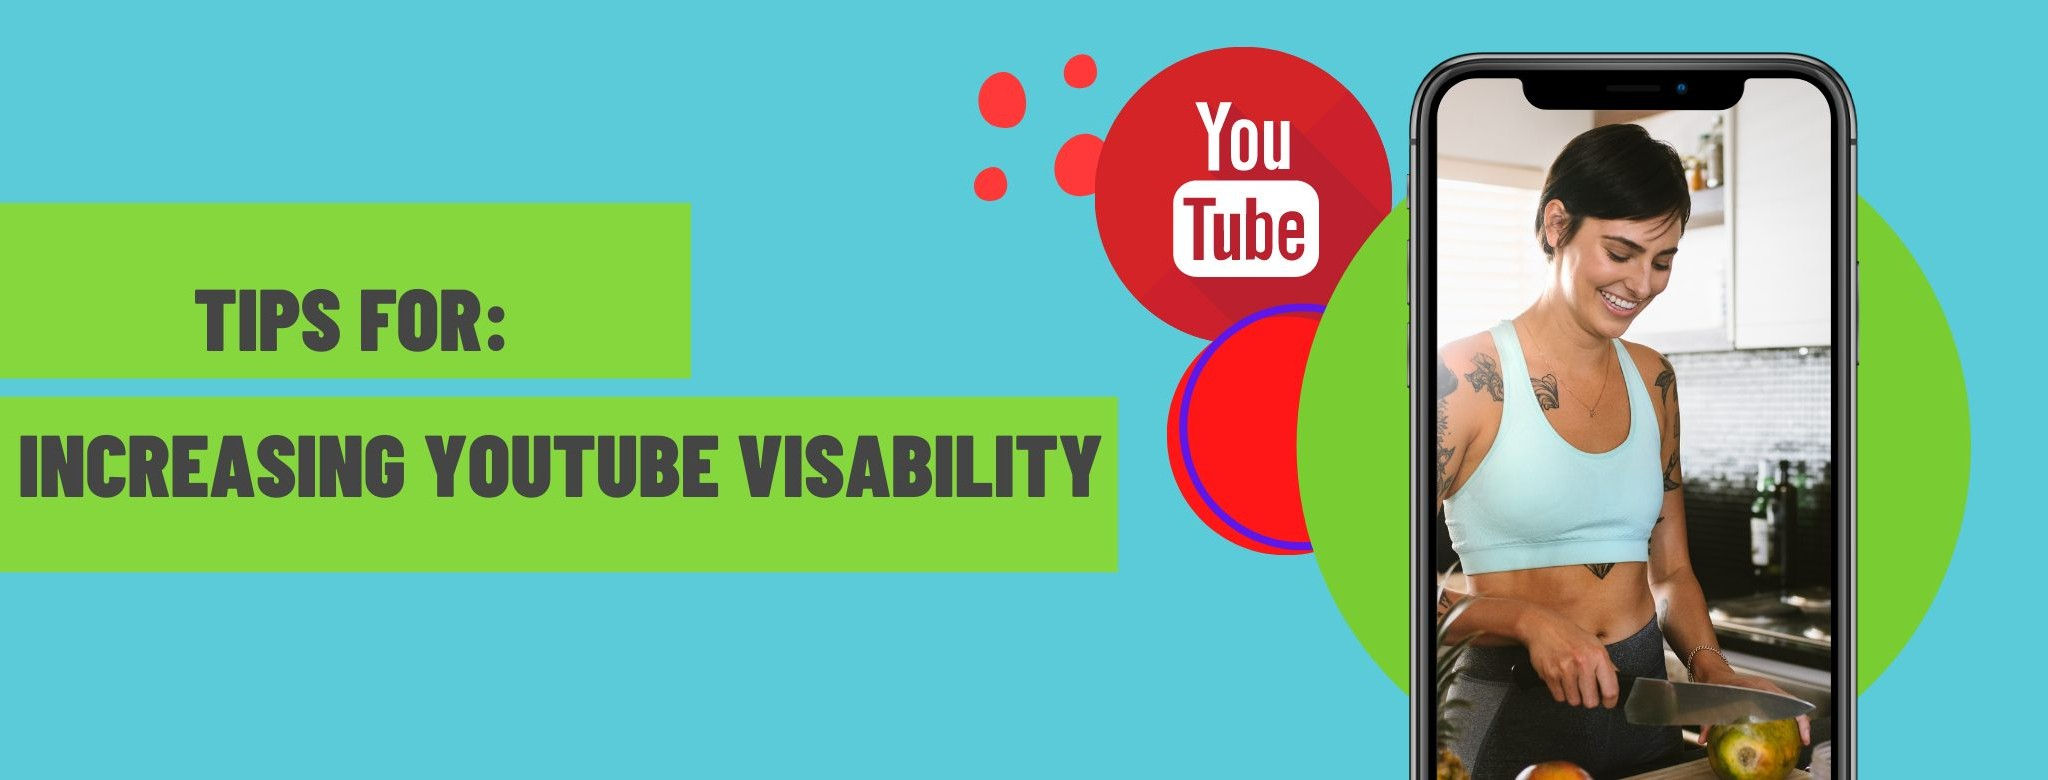 Tips For Getting More Visibility on YouTube